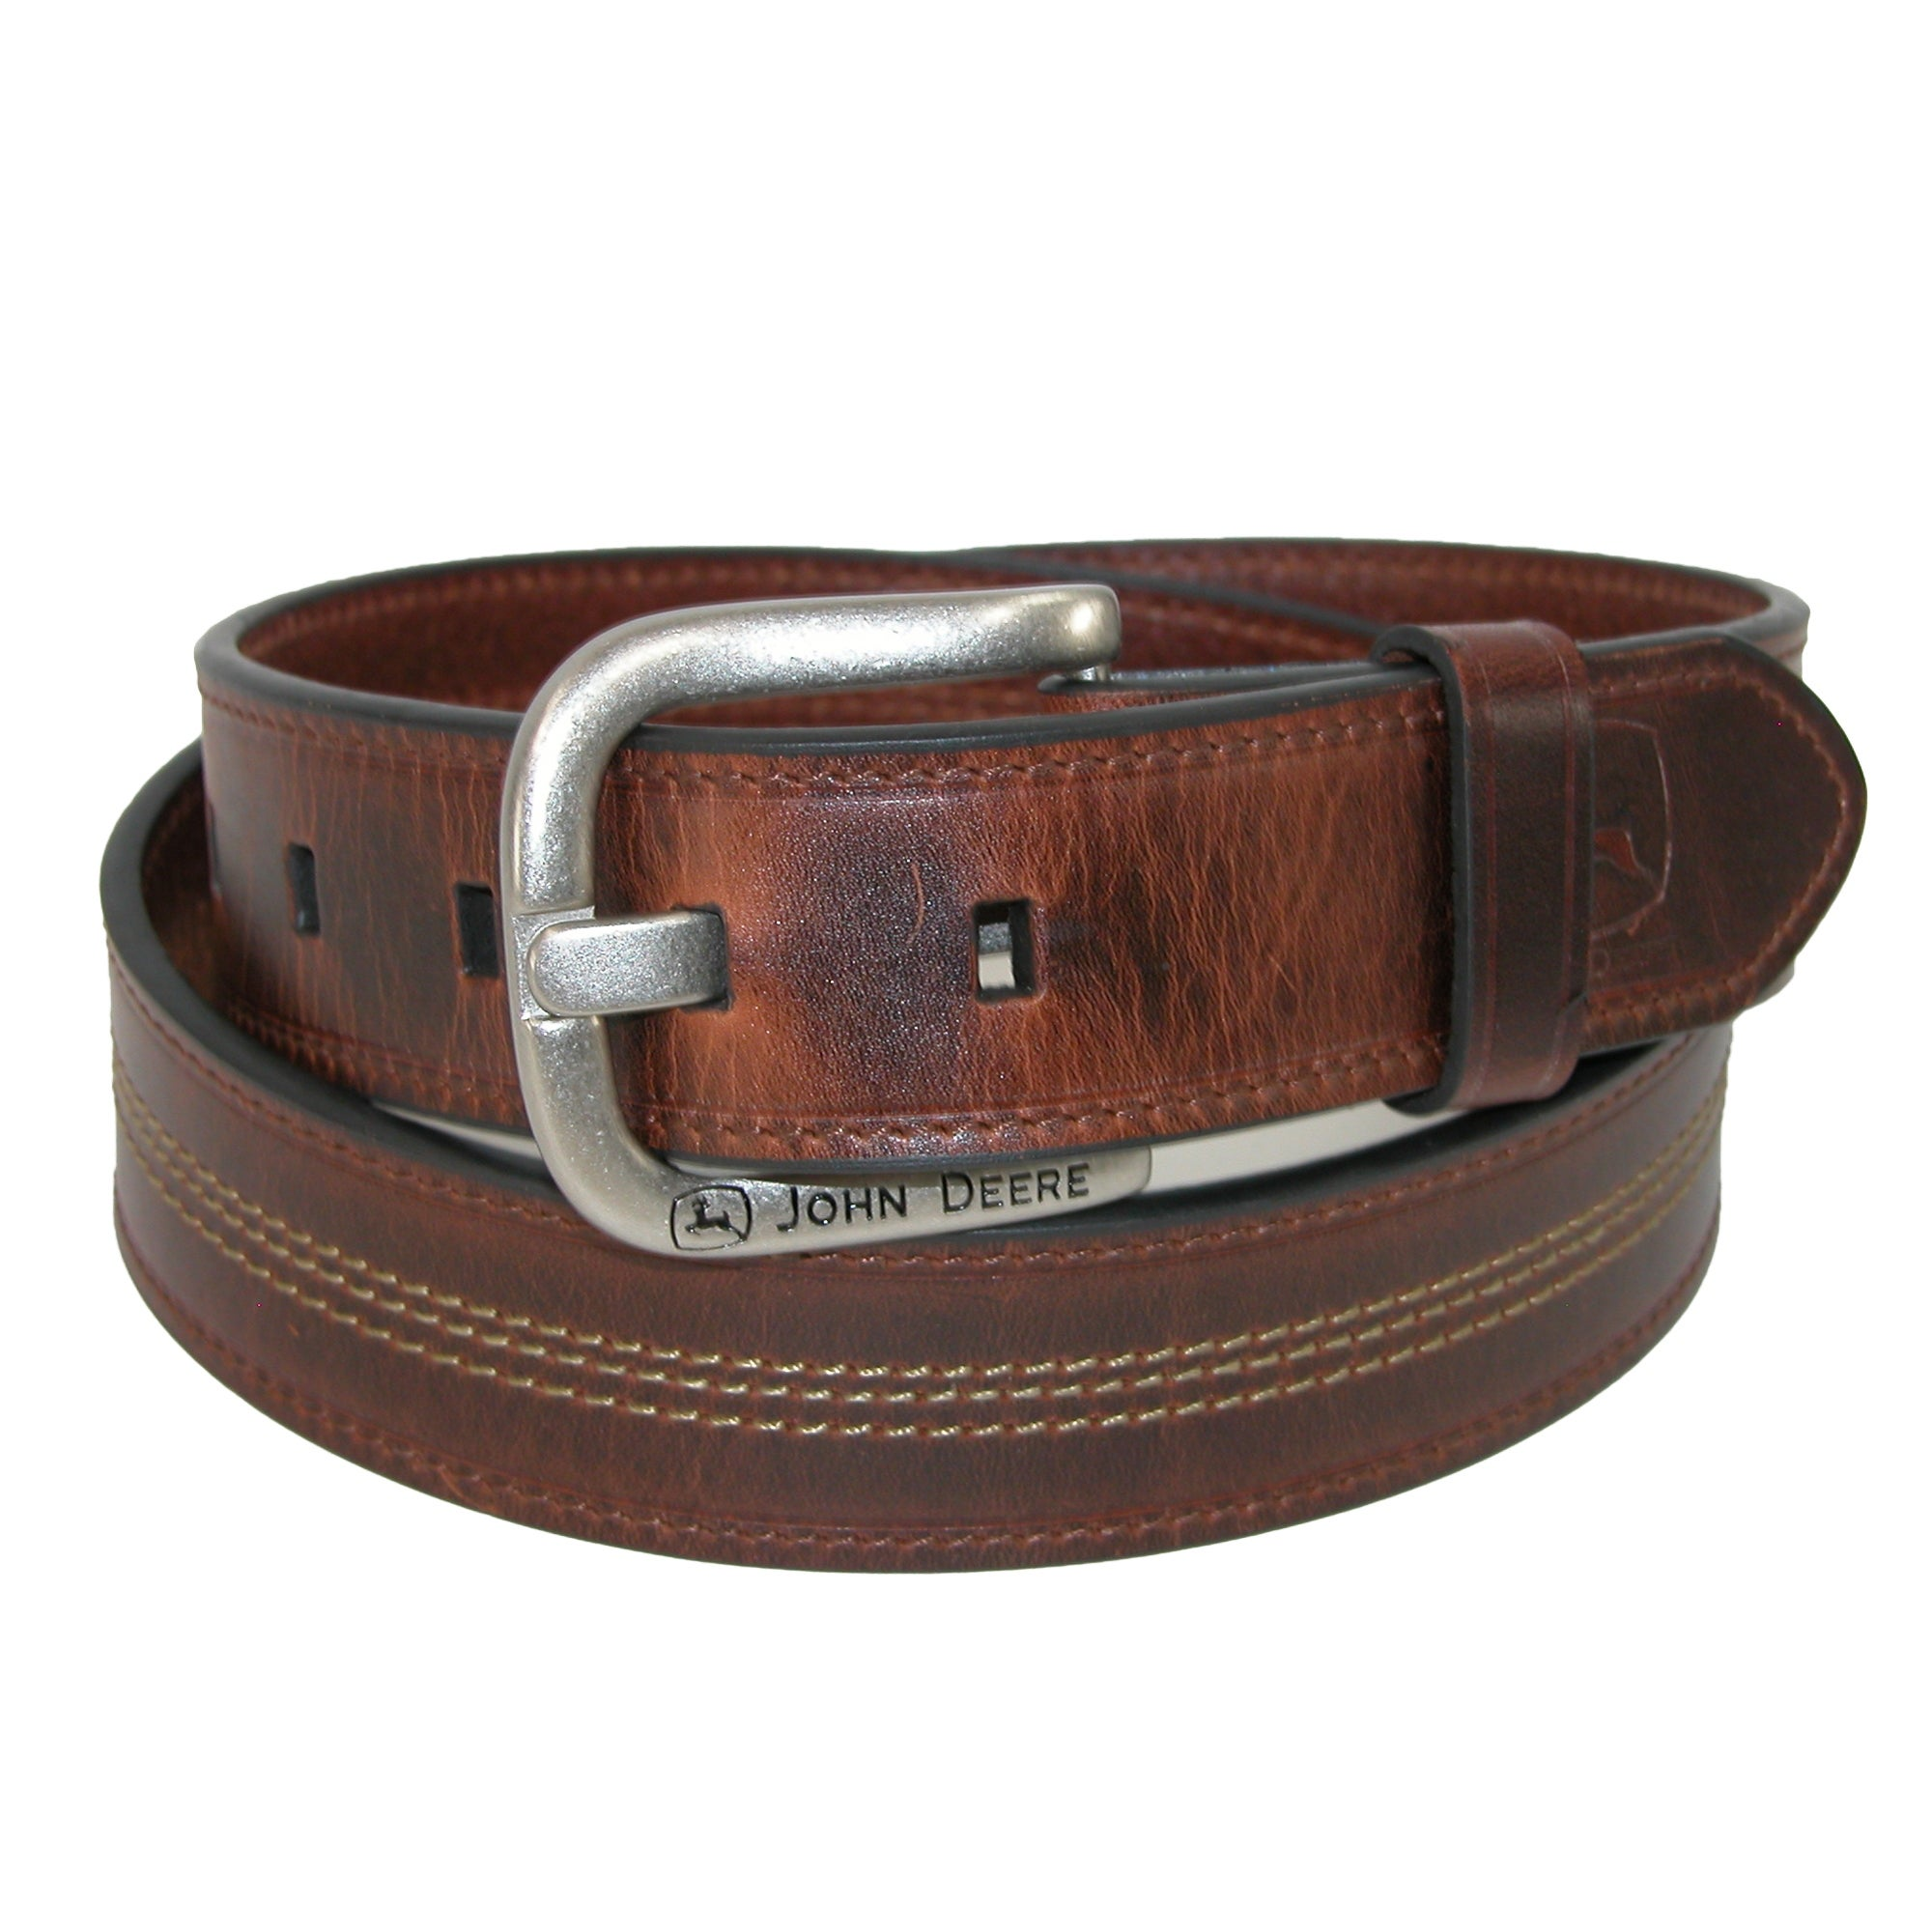 John Deere Mens Canvas with Crazy Horse Leather Belt